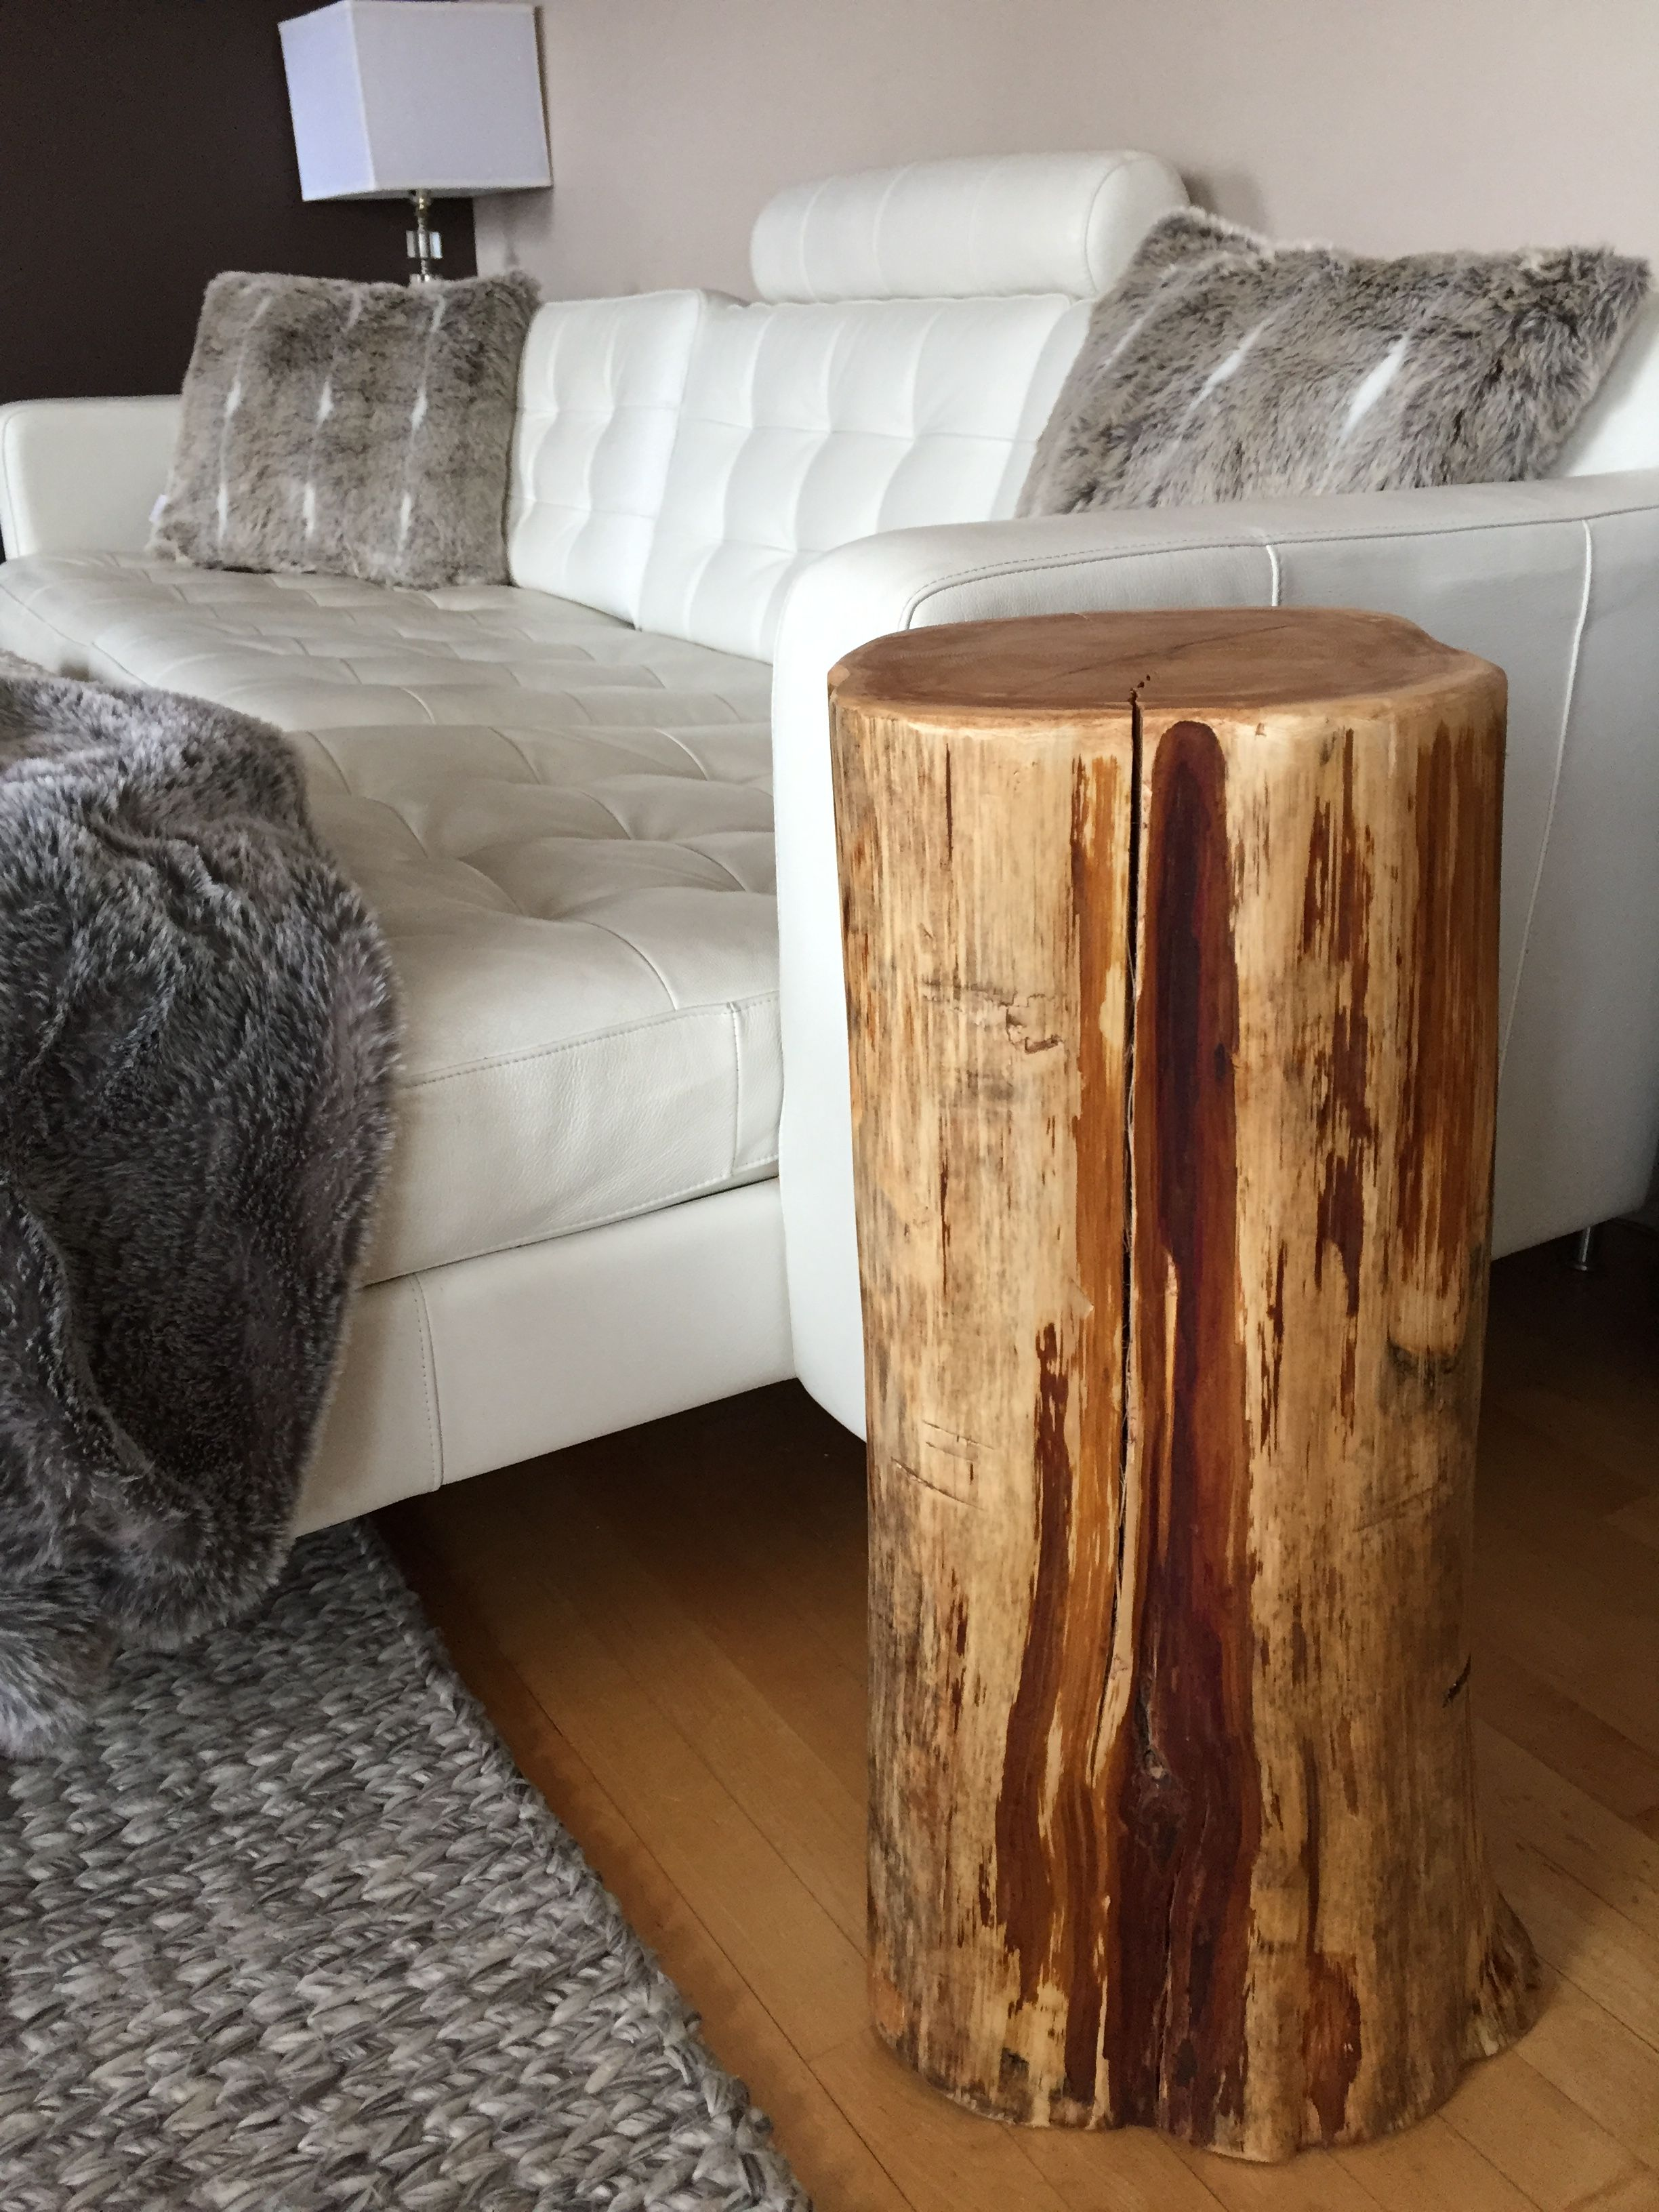 Merveilleux Stump End Table, Tall Stump End Table, Tree Trunk Table For Bedside